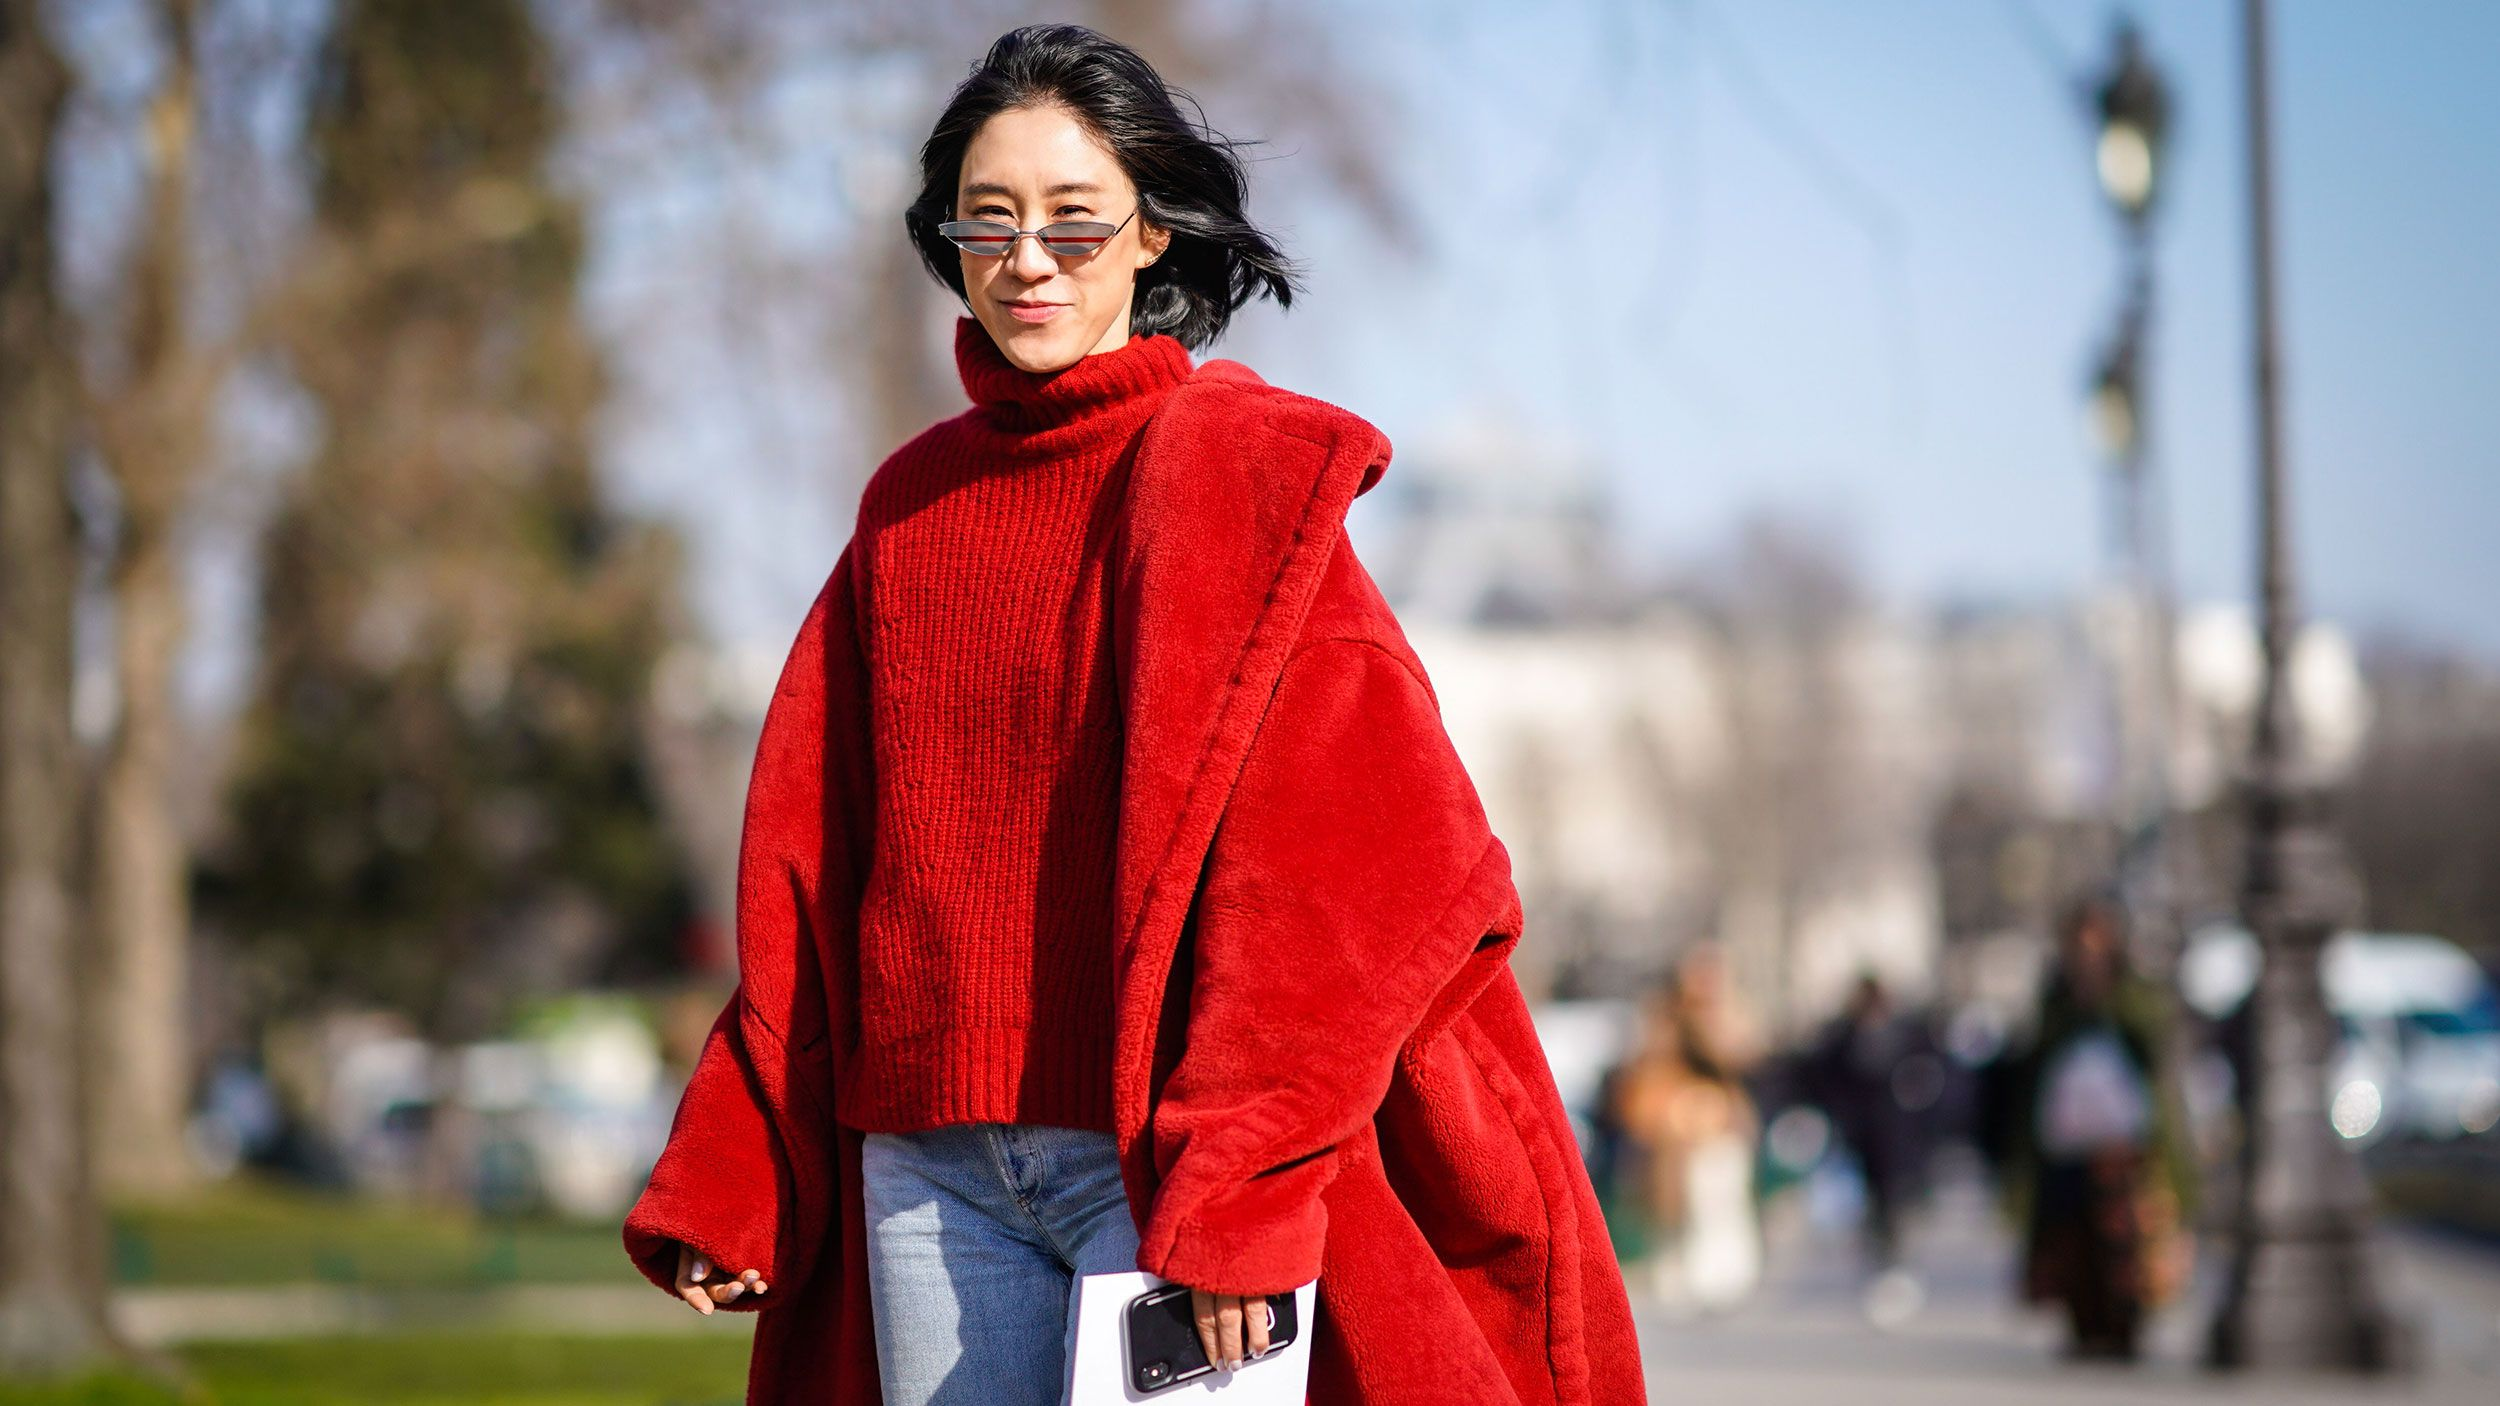 Eva Chen on how to successfully build a brand on Instagram